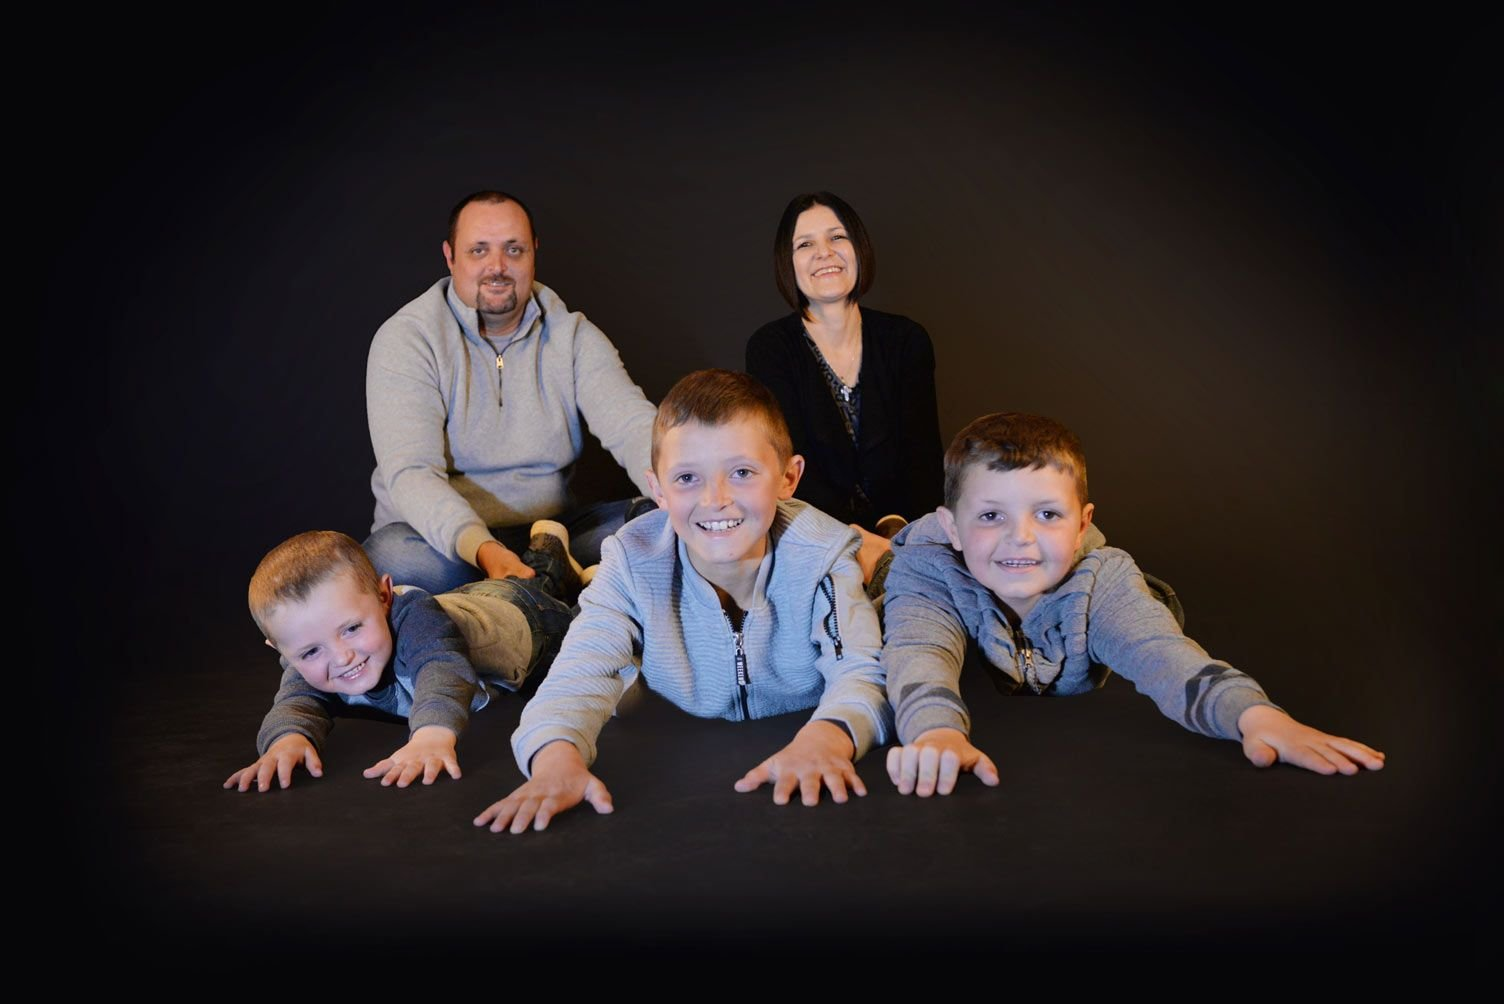 Family photography by Swanphoto